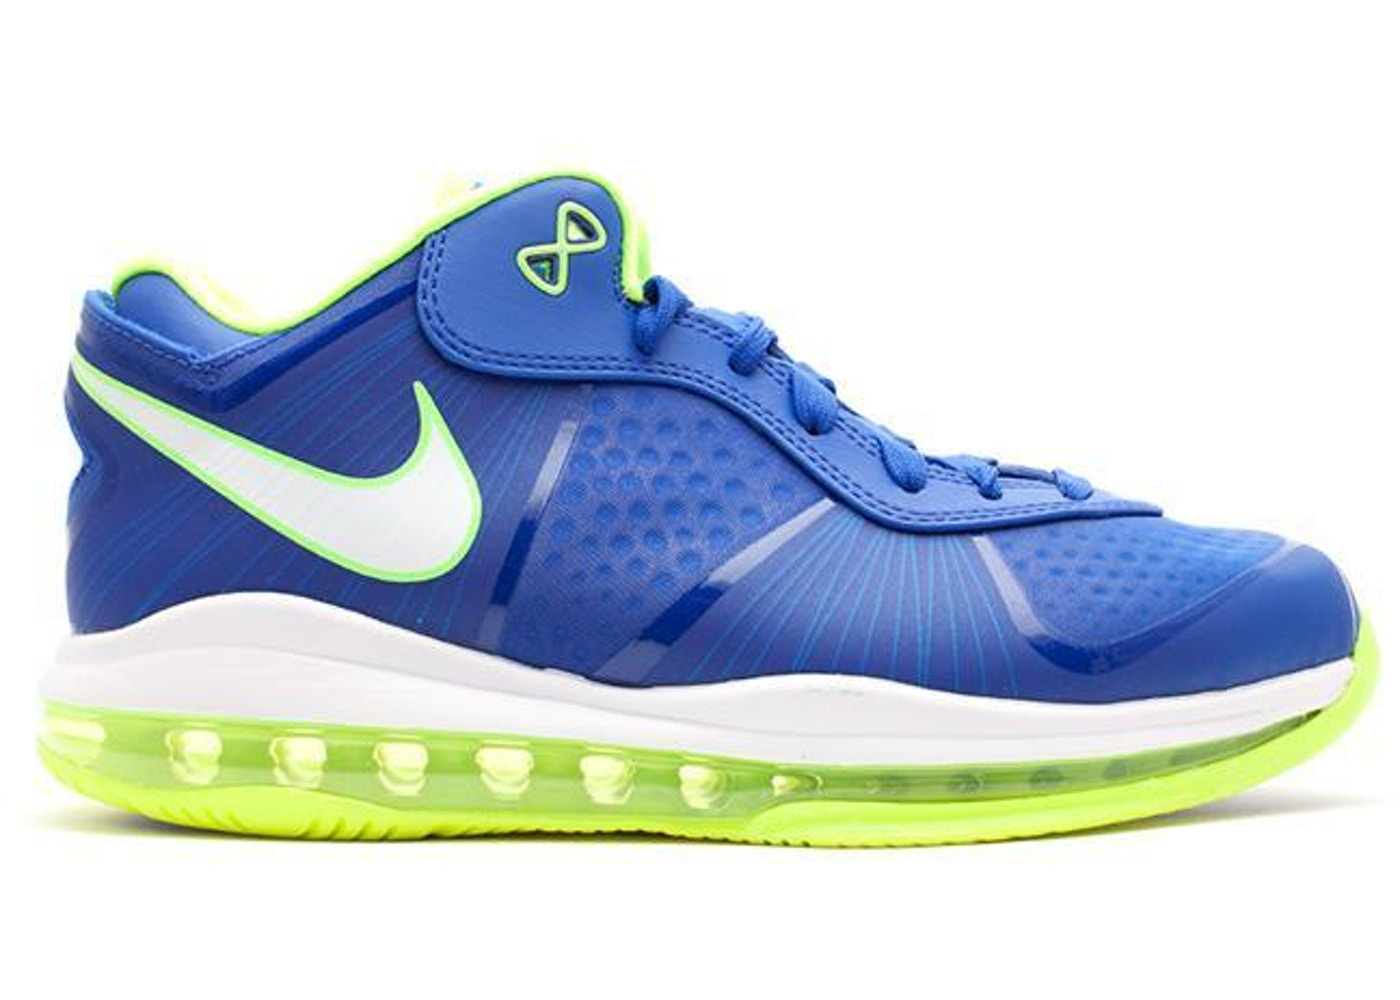 ナイキ NIKE レブロン スニーカー 【 LEBRON 8 V 2 LOW SPRITE TREAURE BLUE WHITEBLACKVOLT 】 メンズ